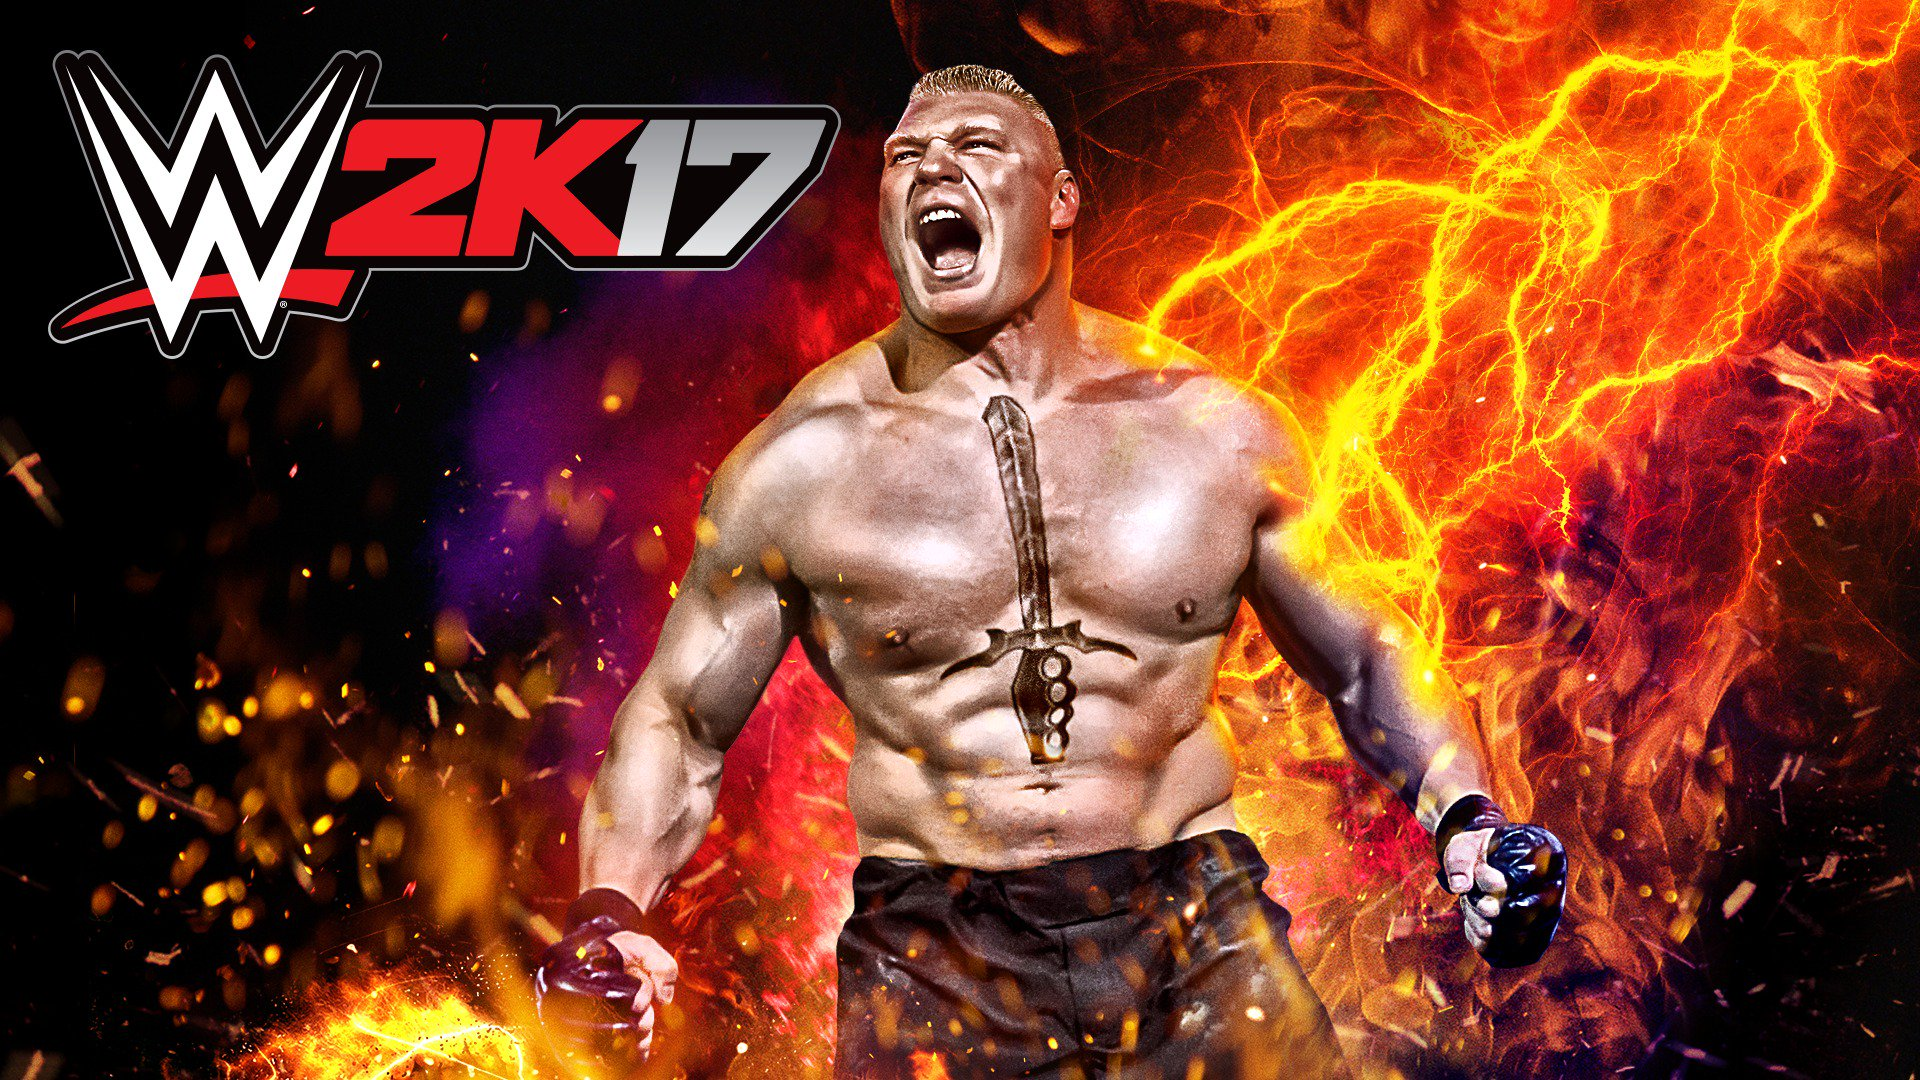 2K Sports Announced Monday That Former WWE Champion Brock Lesnar Will